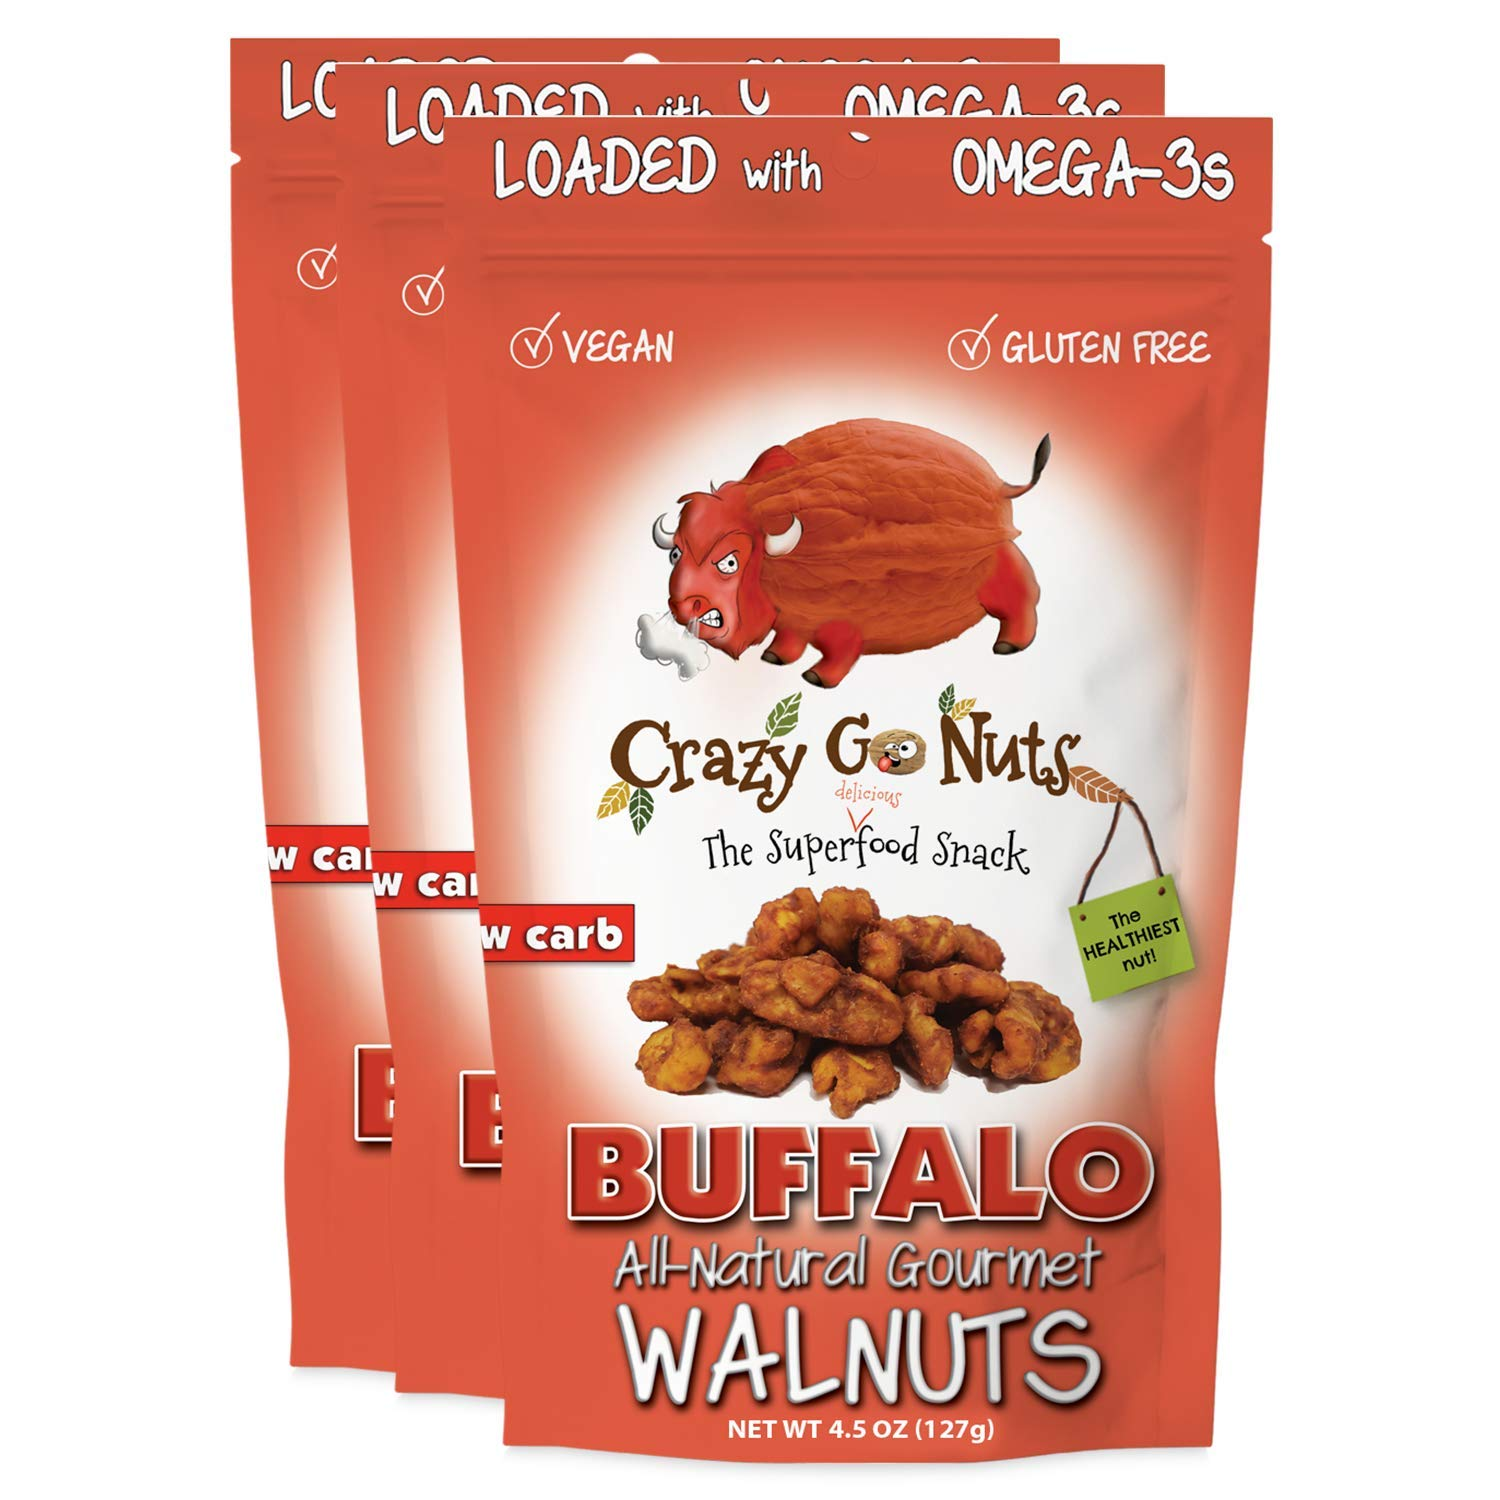 Crazy Go Nuts Walnuts Challenge the Max 87% OFF lowest price - Buffalo oz 4.5 3-Pack Snack Healthy